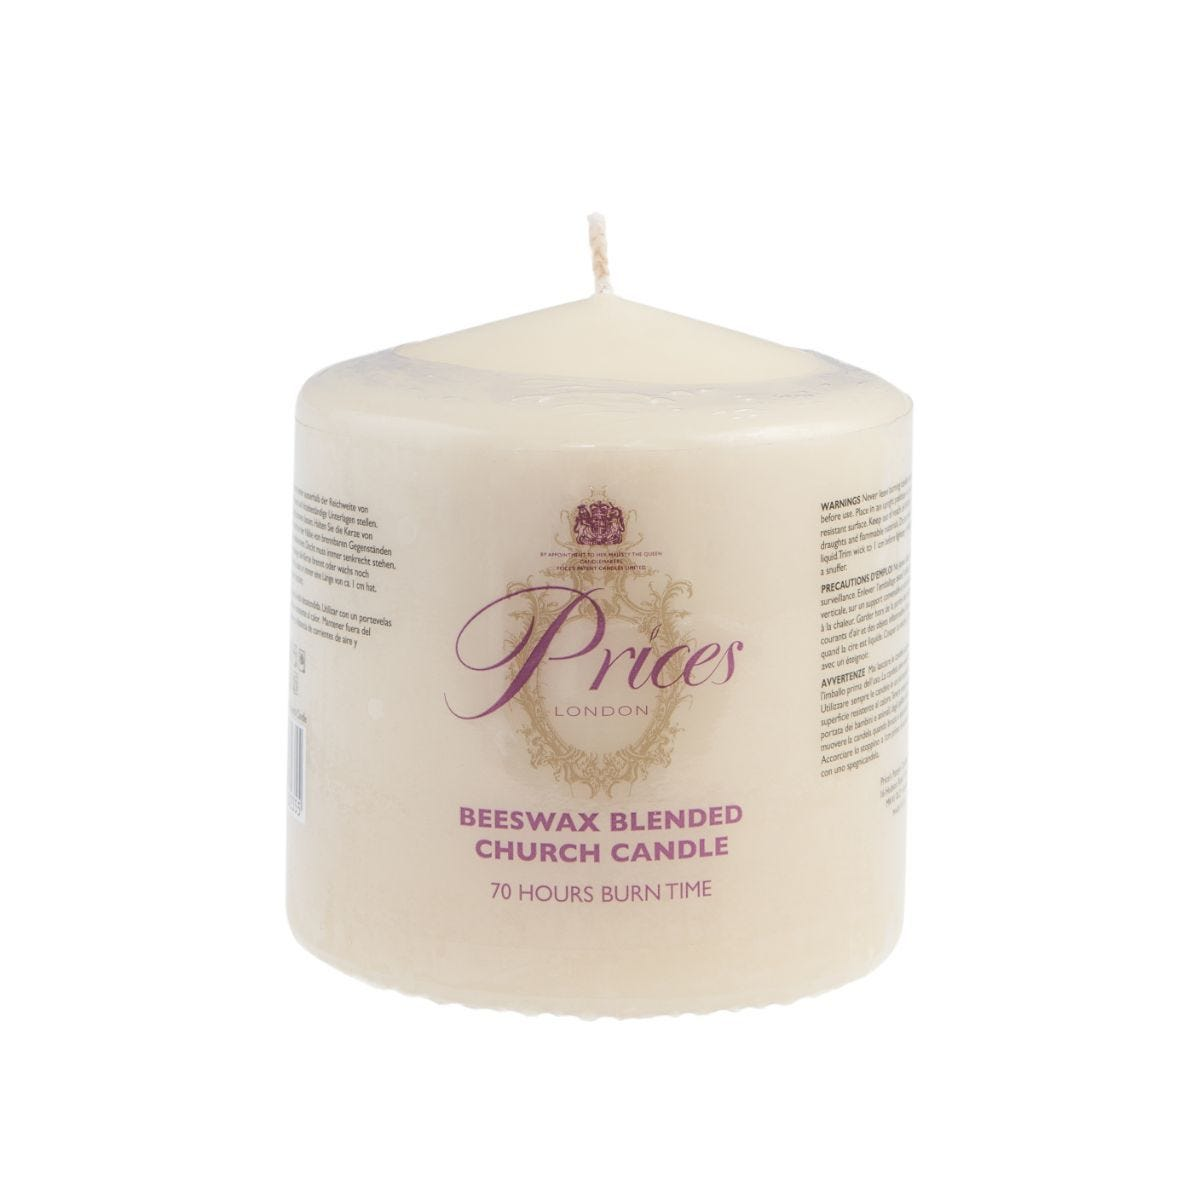 Price's 75 x 70 Beeswax Candle